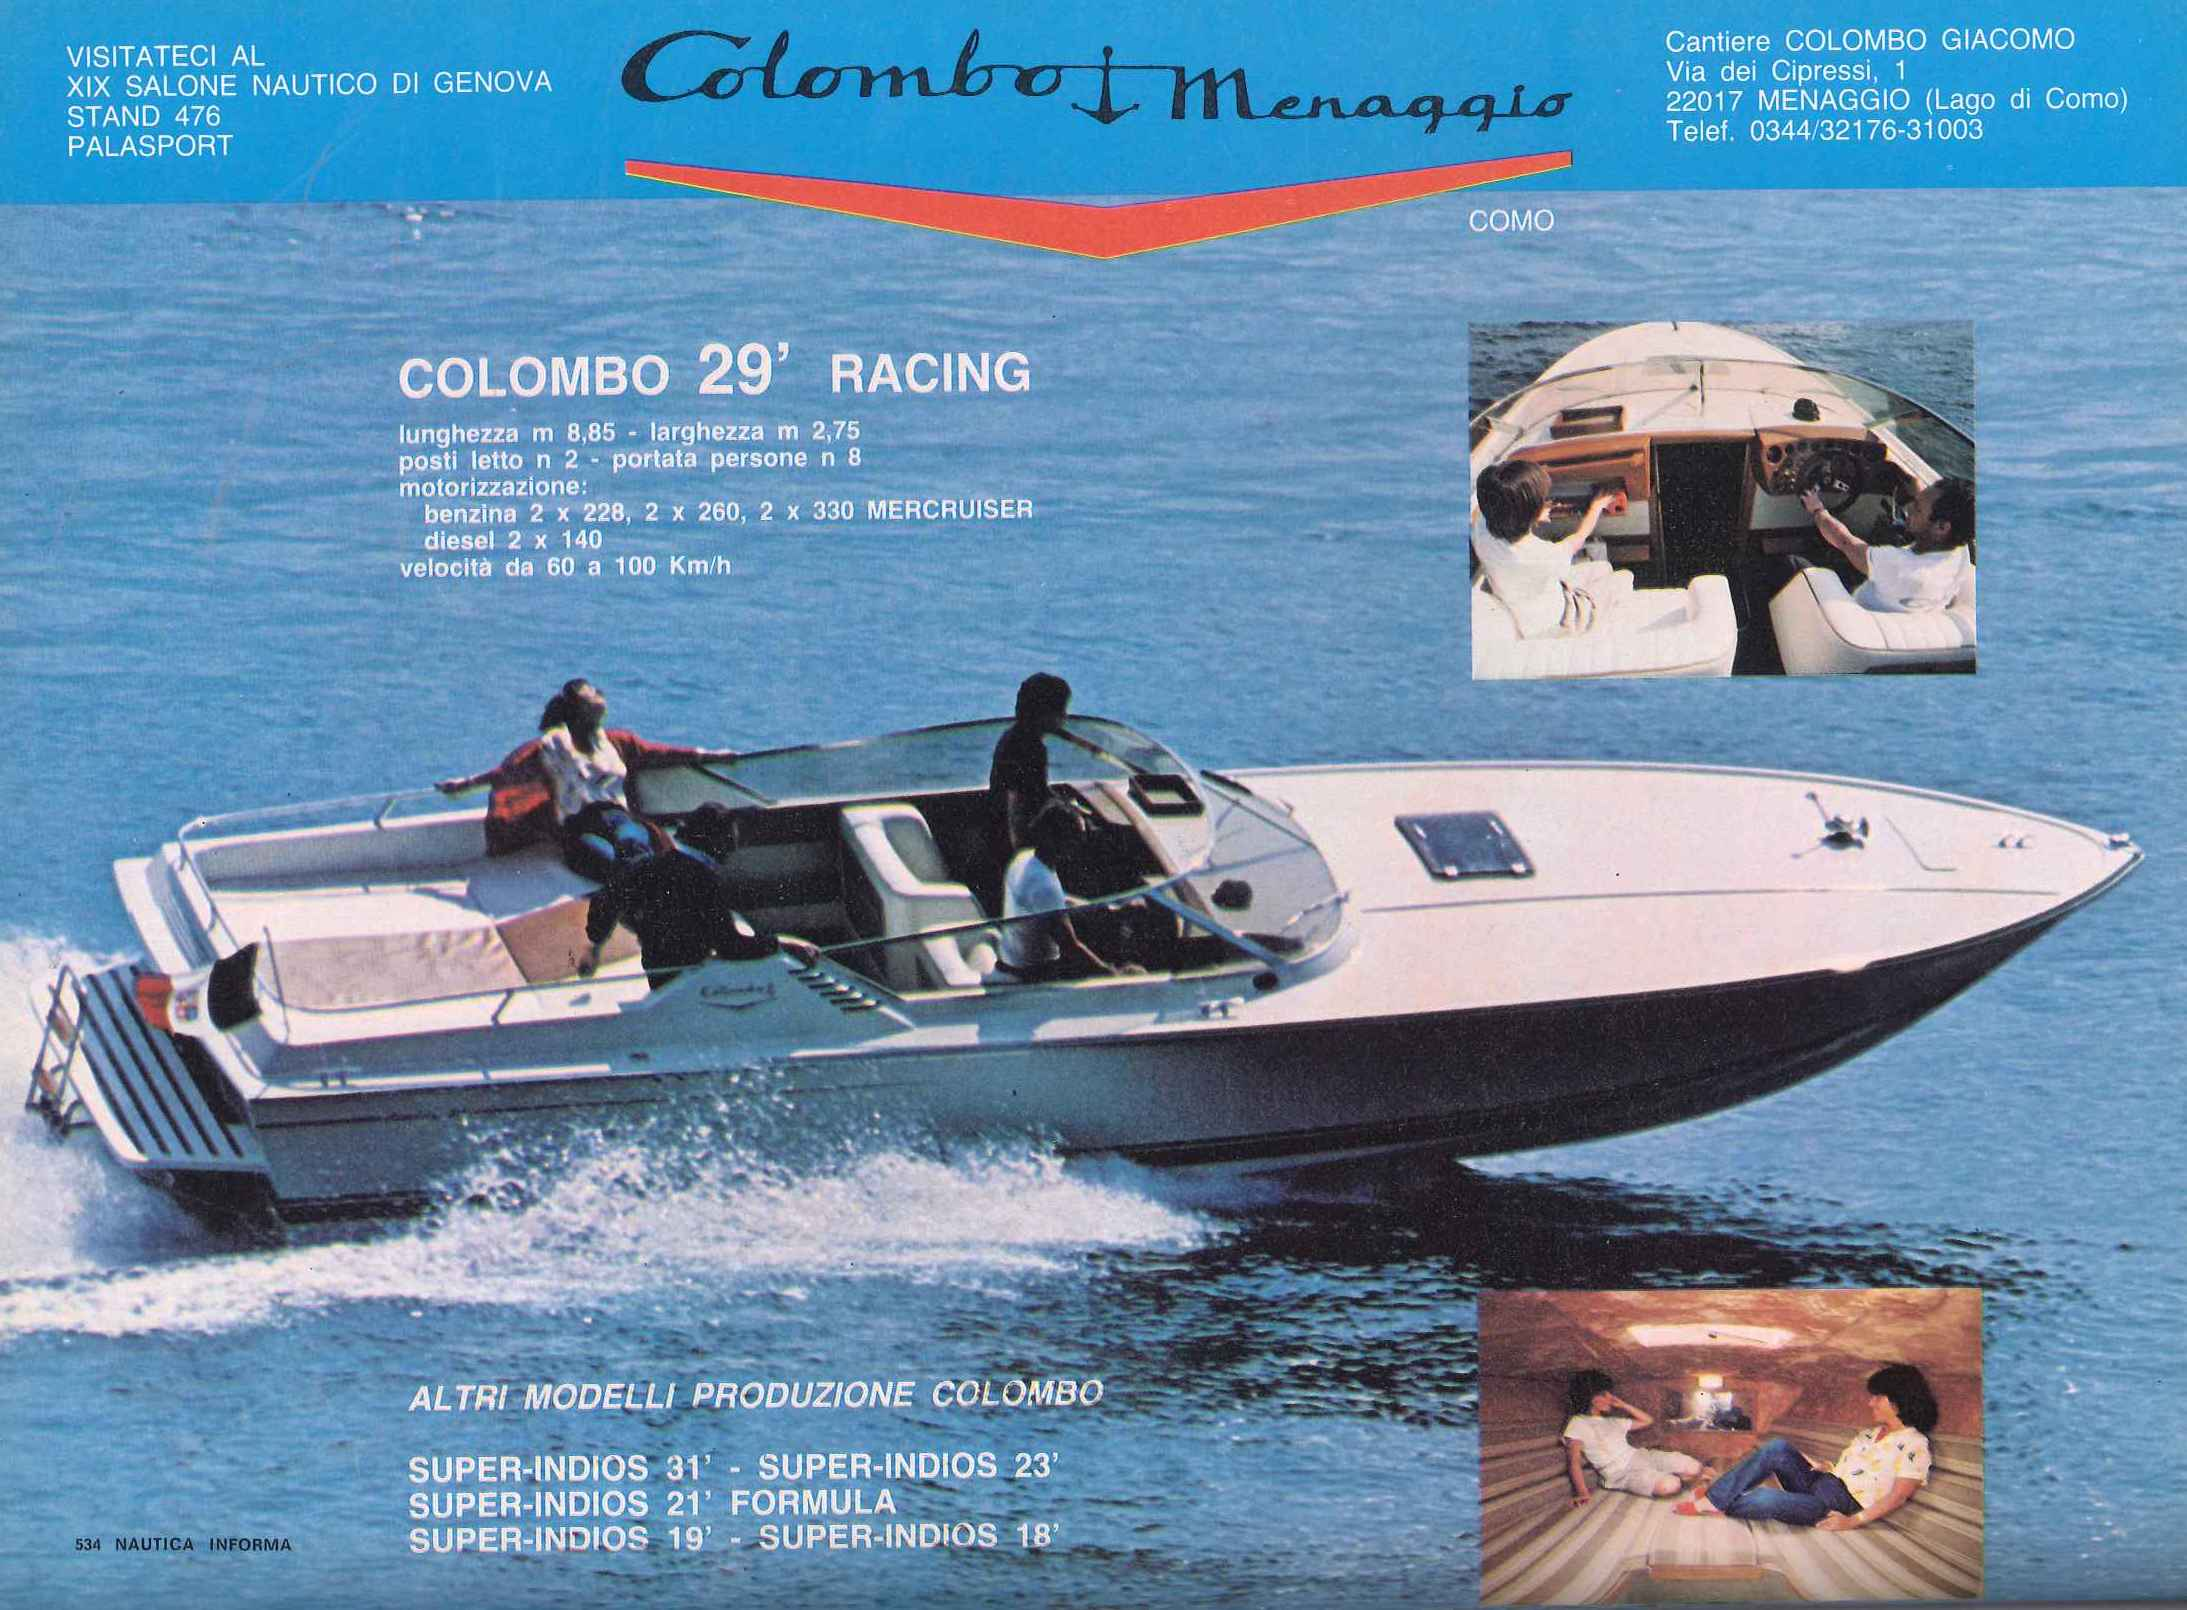 1979 10 ADV COLOMBO 29 RACING NAUTICA N211.jpg